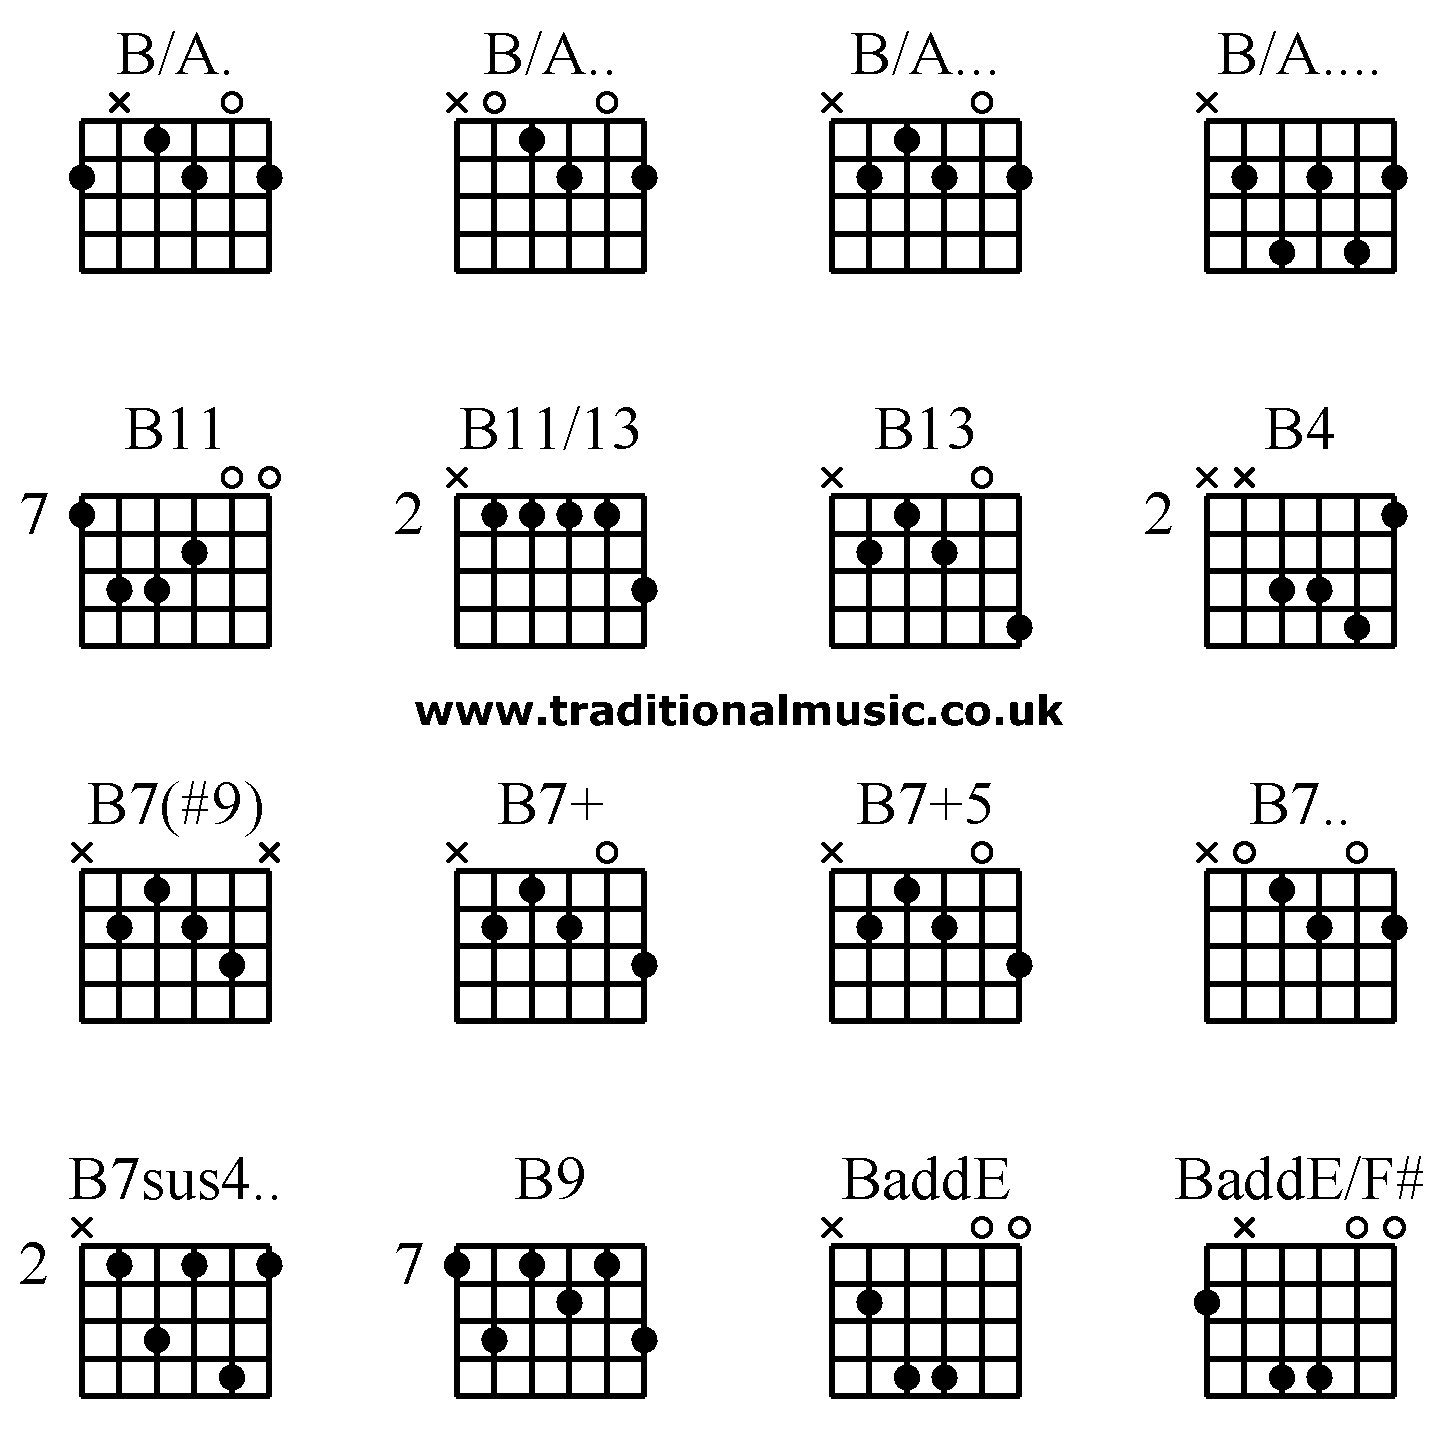 Advanced Guitar Chordsba Ba Ba Ba B11 B1113 B13 B4